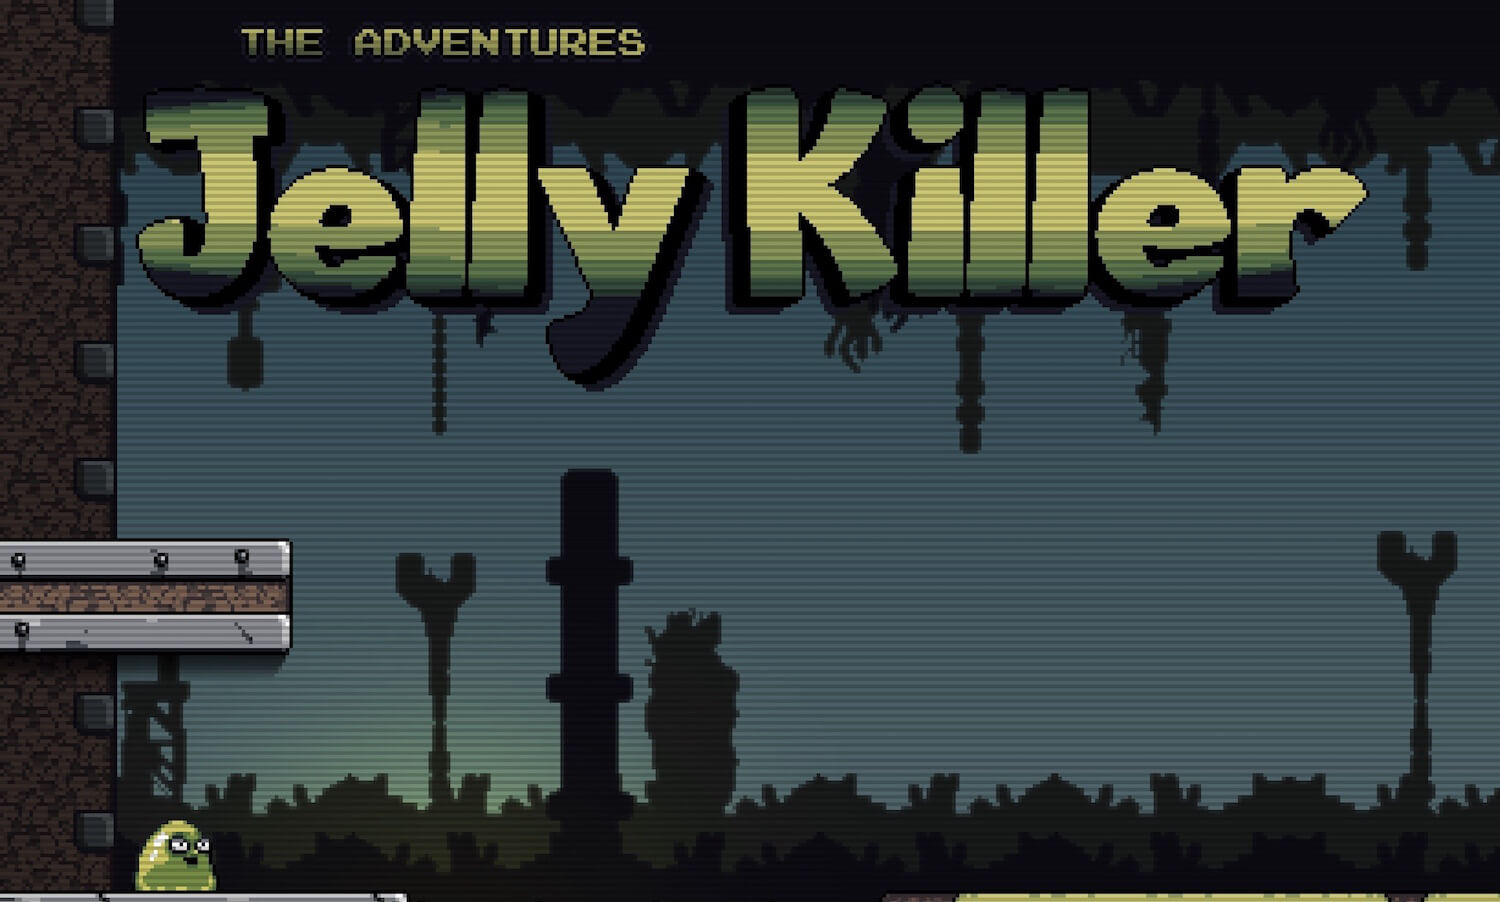 Jelly_Killer_1